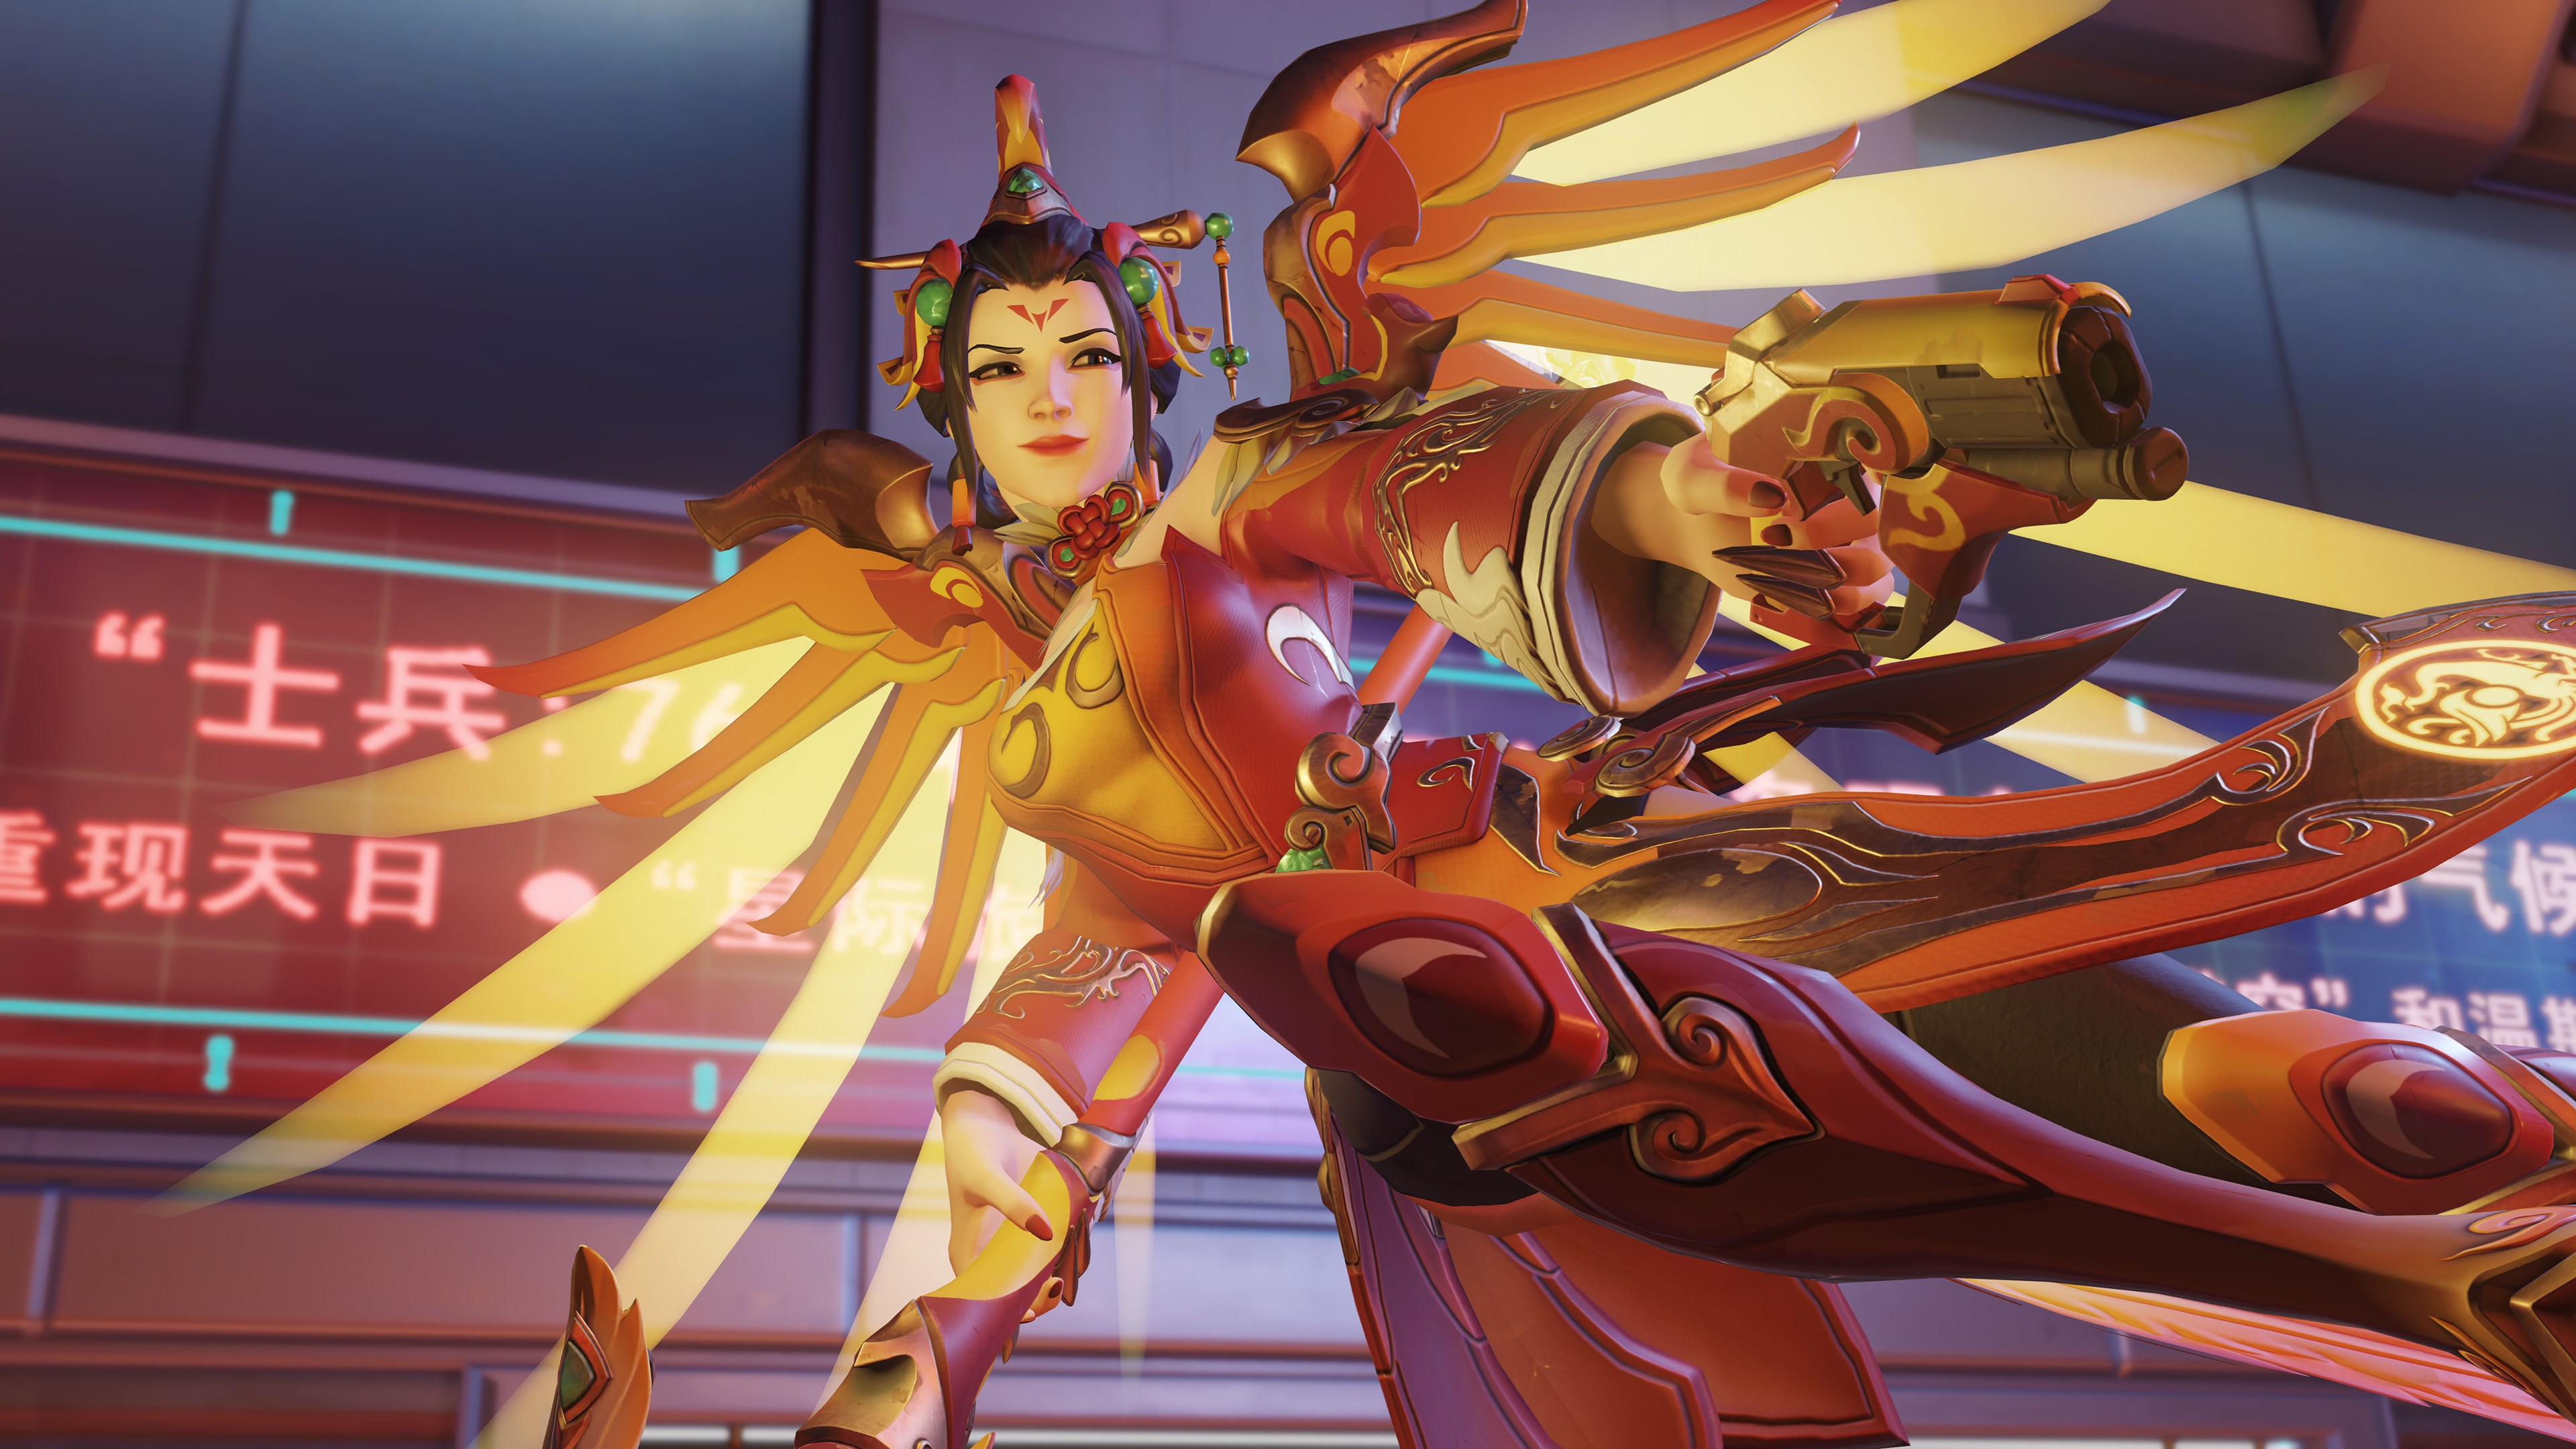 Overwatch S Lunar New Year Legendary Skins This Year Are Badass